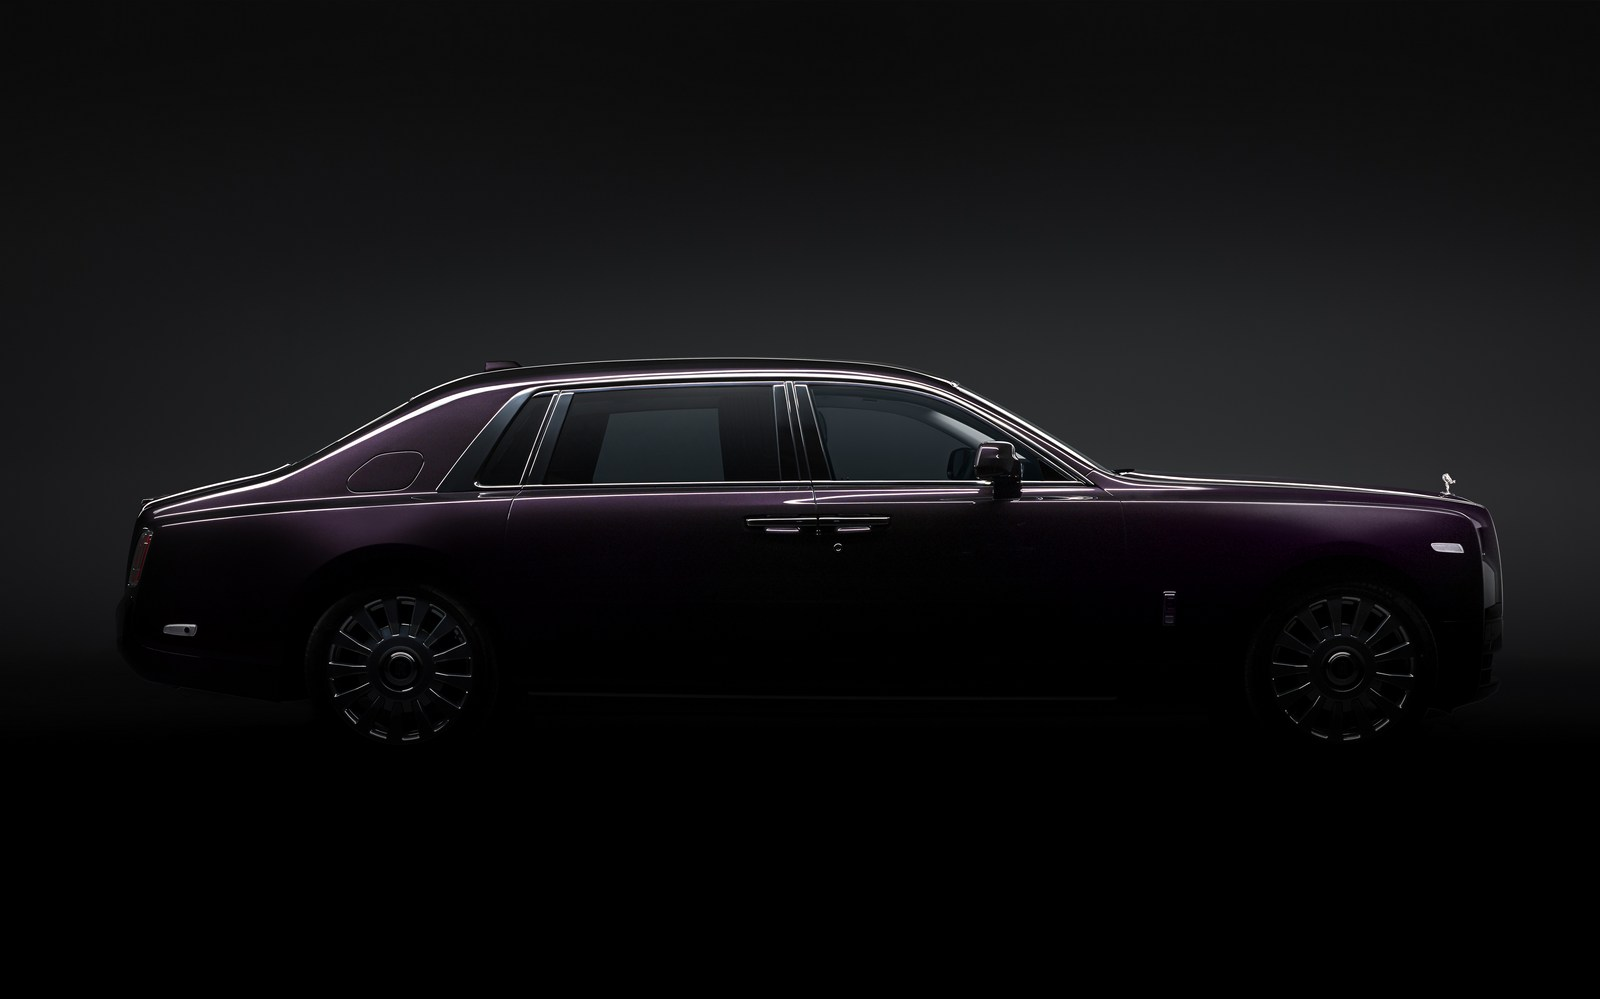 2018_Rolls-Royce_Phantom_14